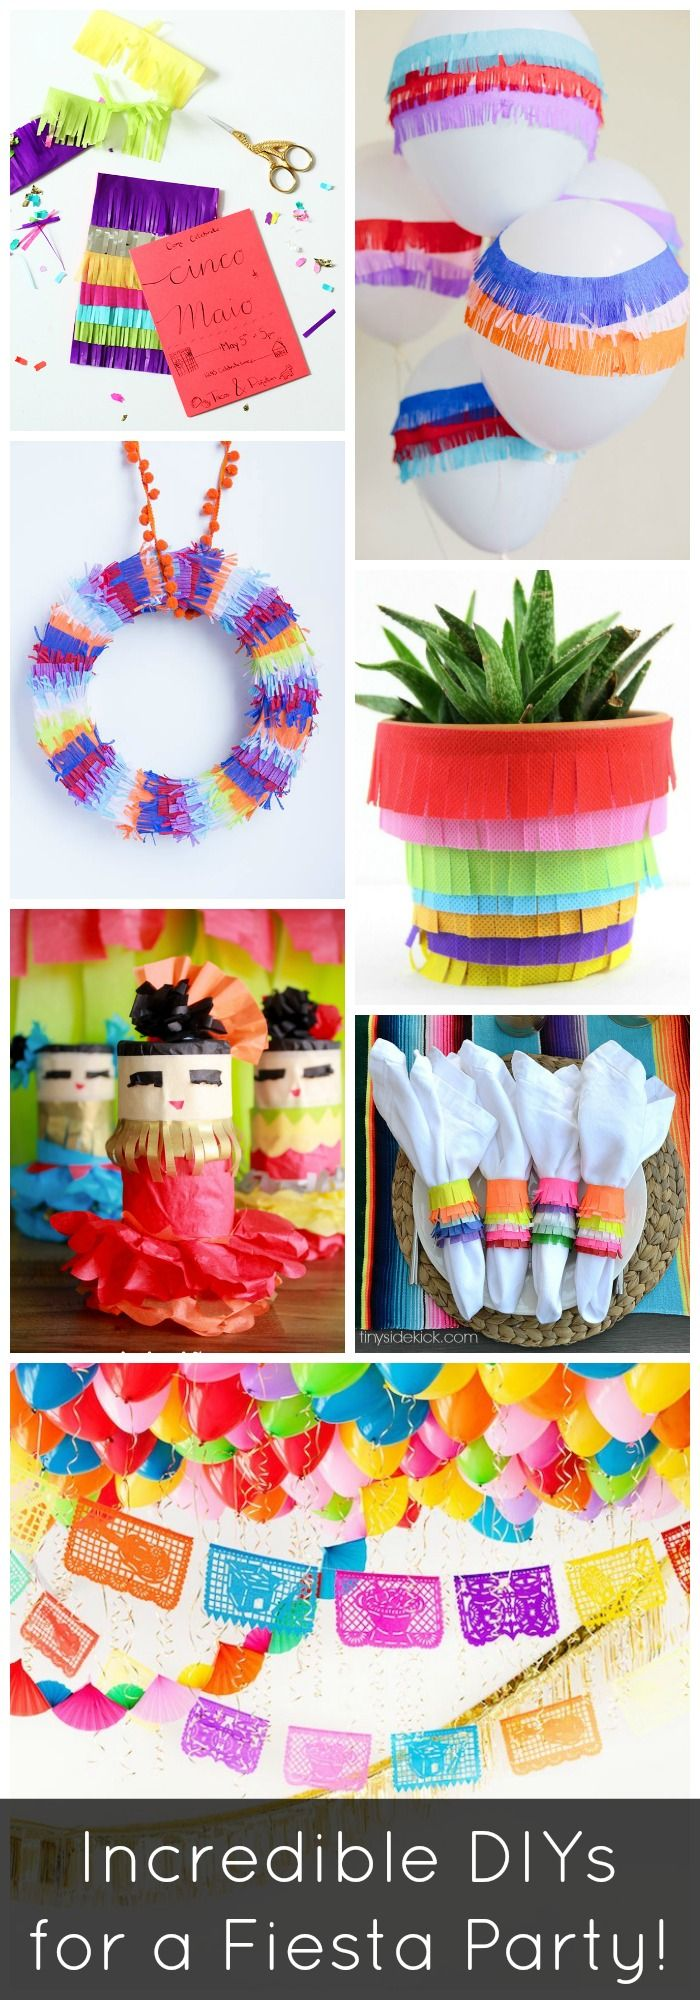 Everything You Need To Throw An Amazing Fiesta Party! And These Are All  Super Simple